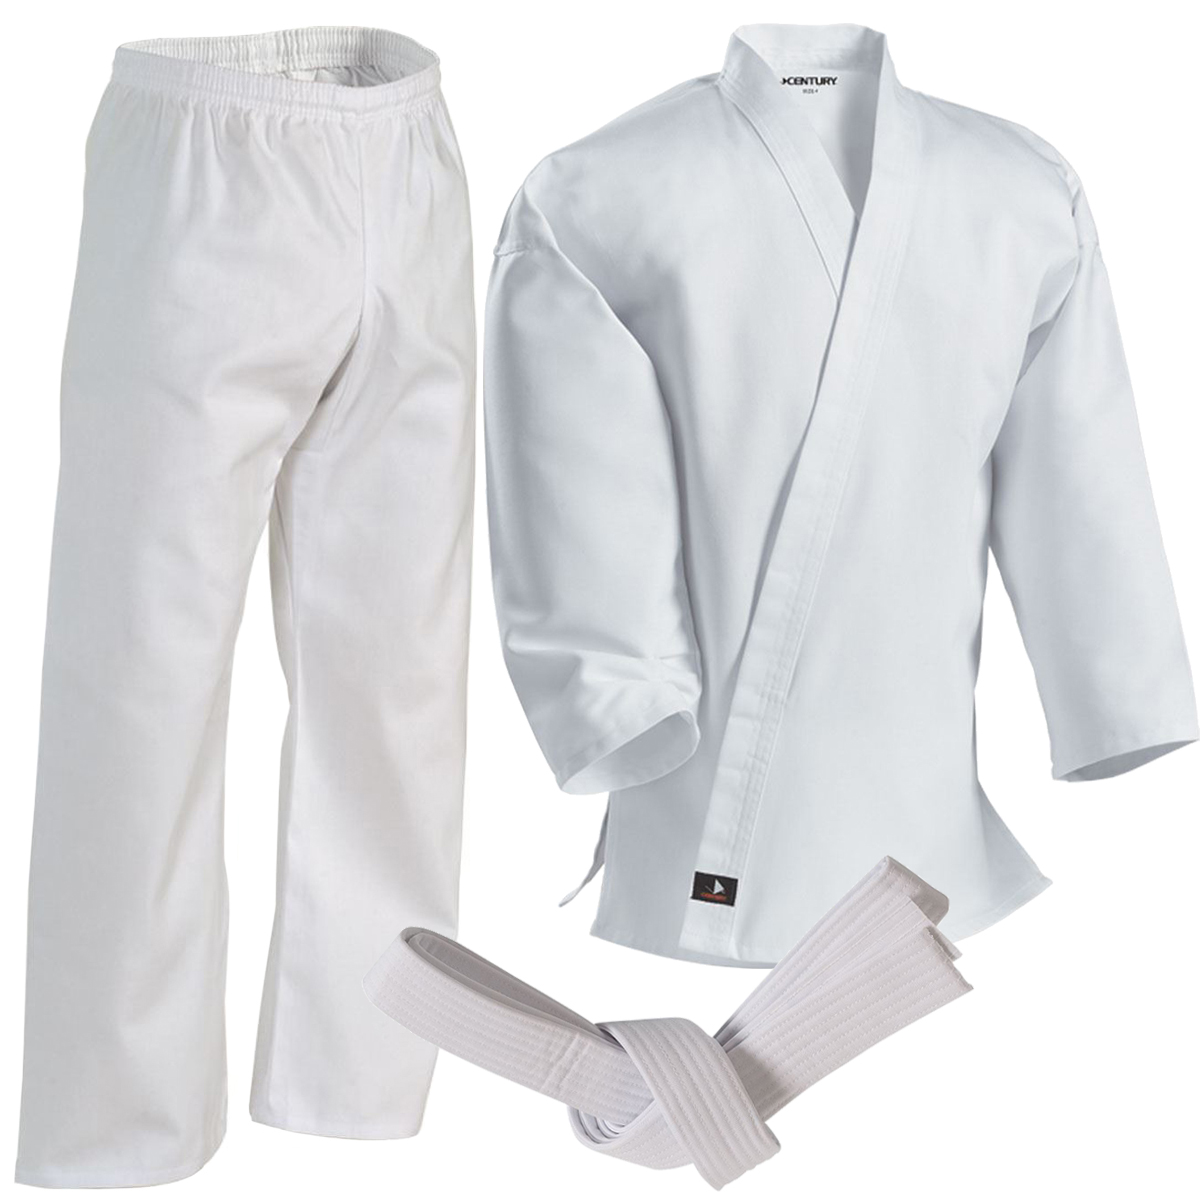 Century 7 oz Middleweight Student Uniform with Elastic Pant c0462